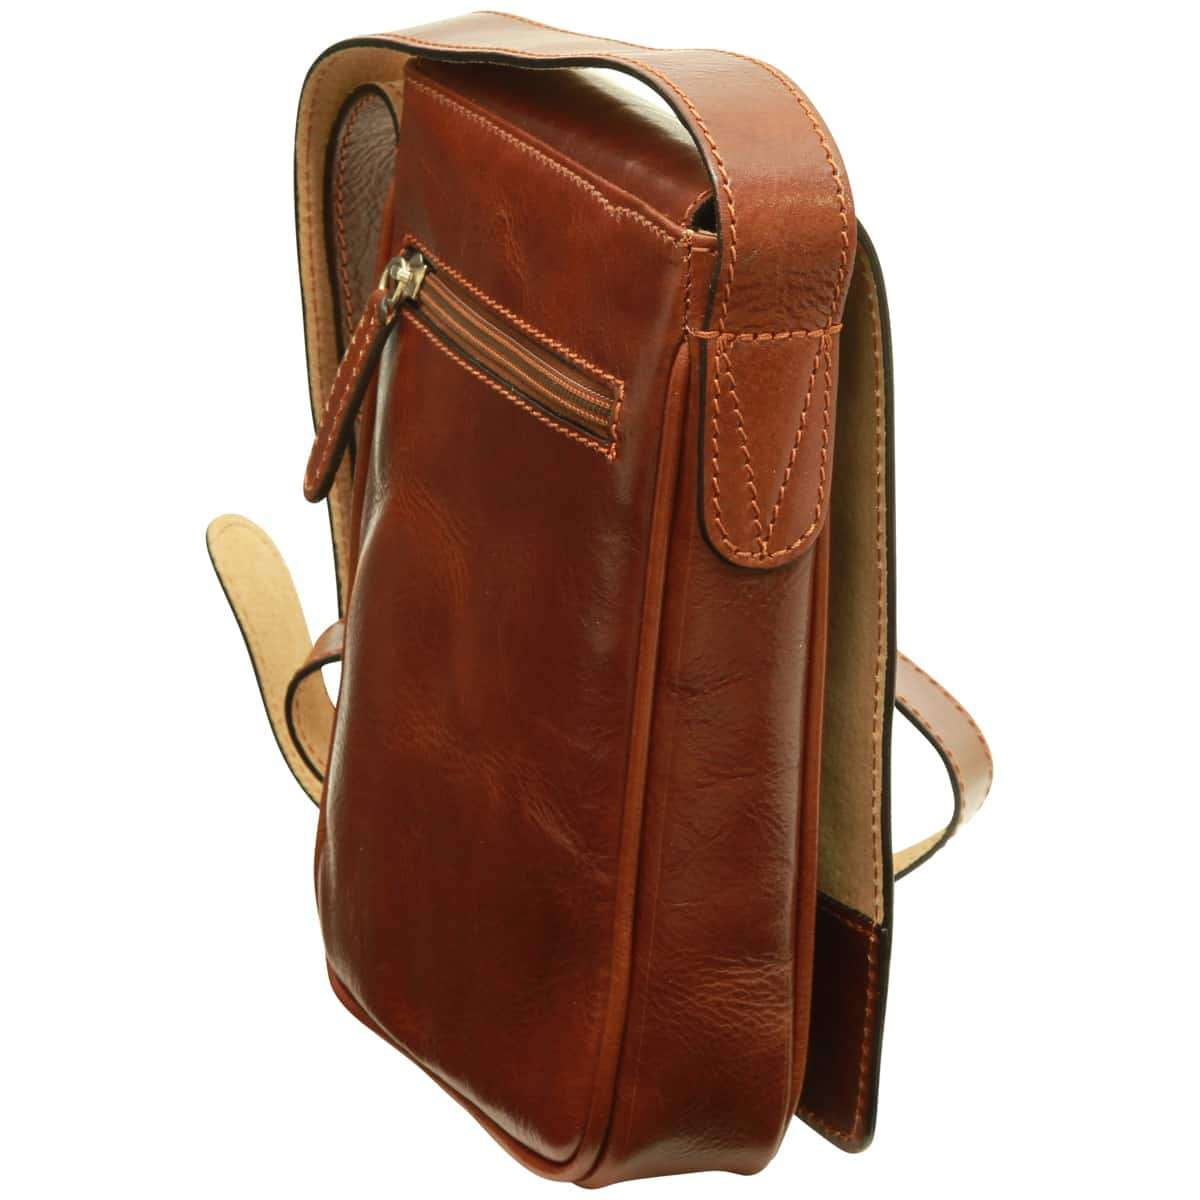 Cowhide leather cross body bag - Brown | 070805MA UK | Old Angler Firenze